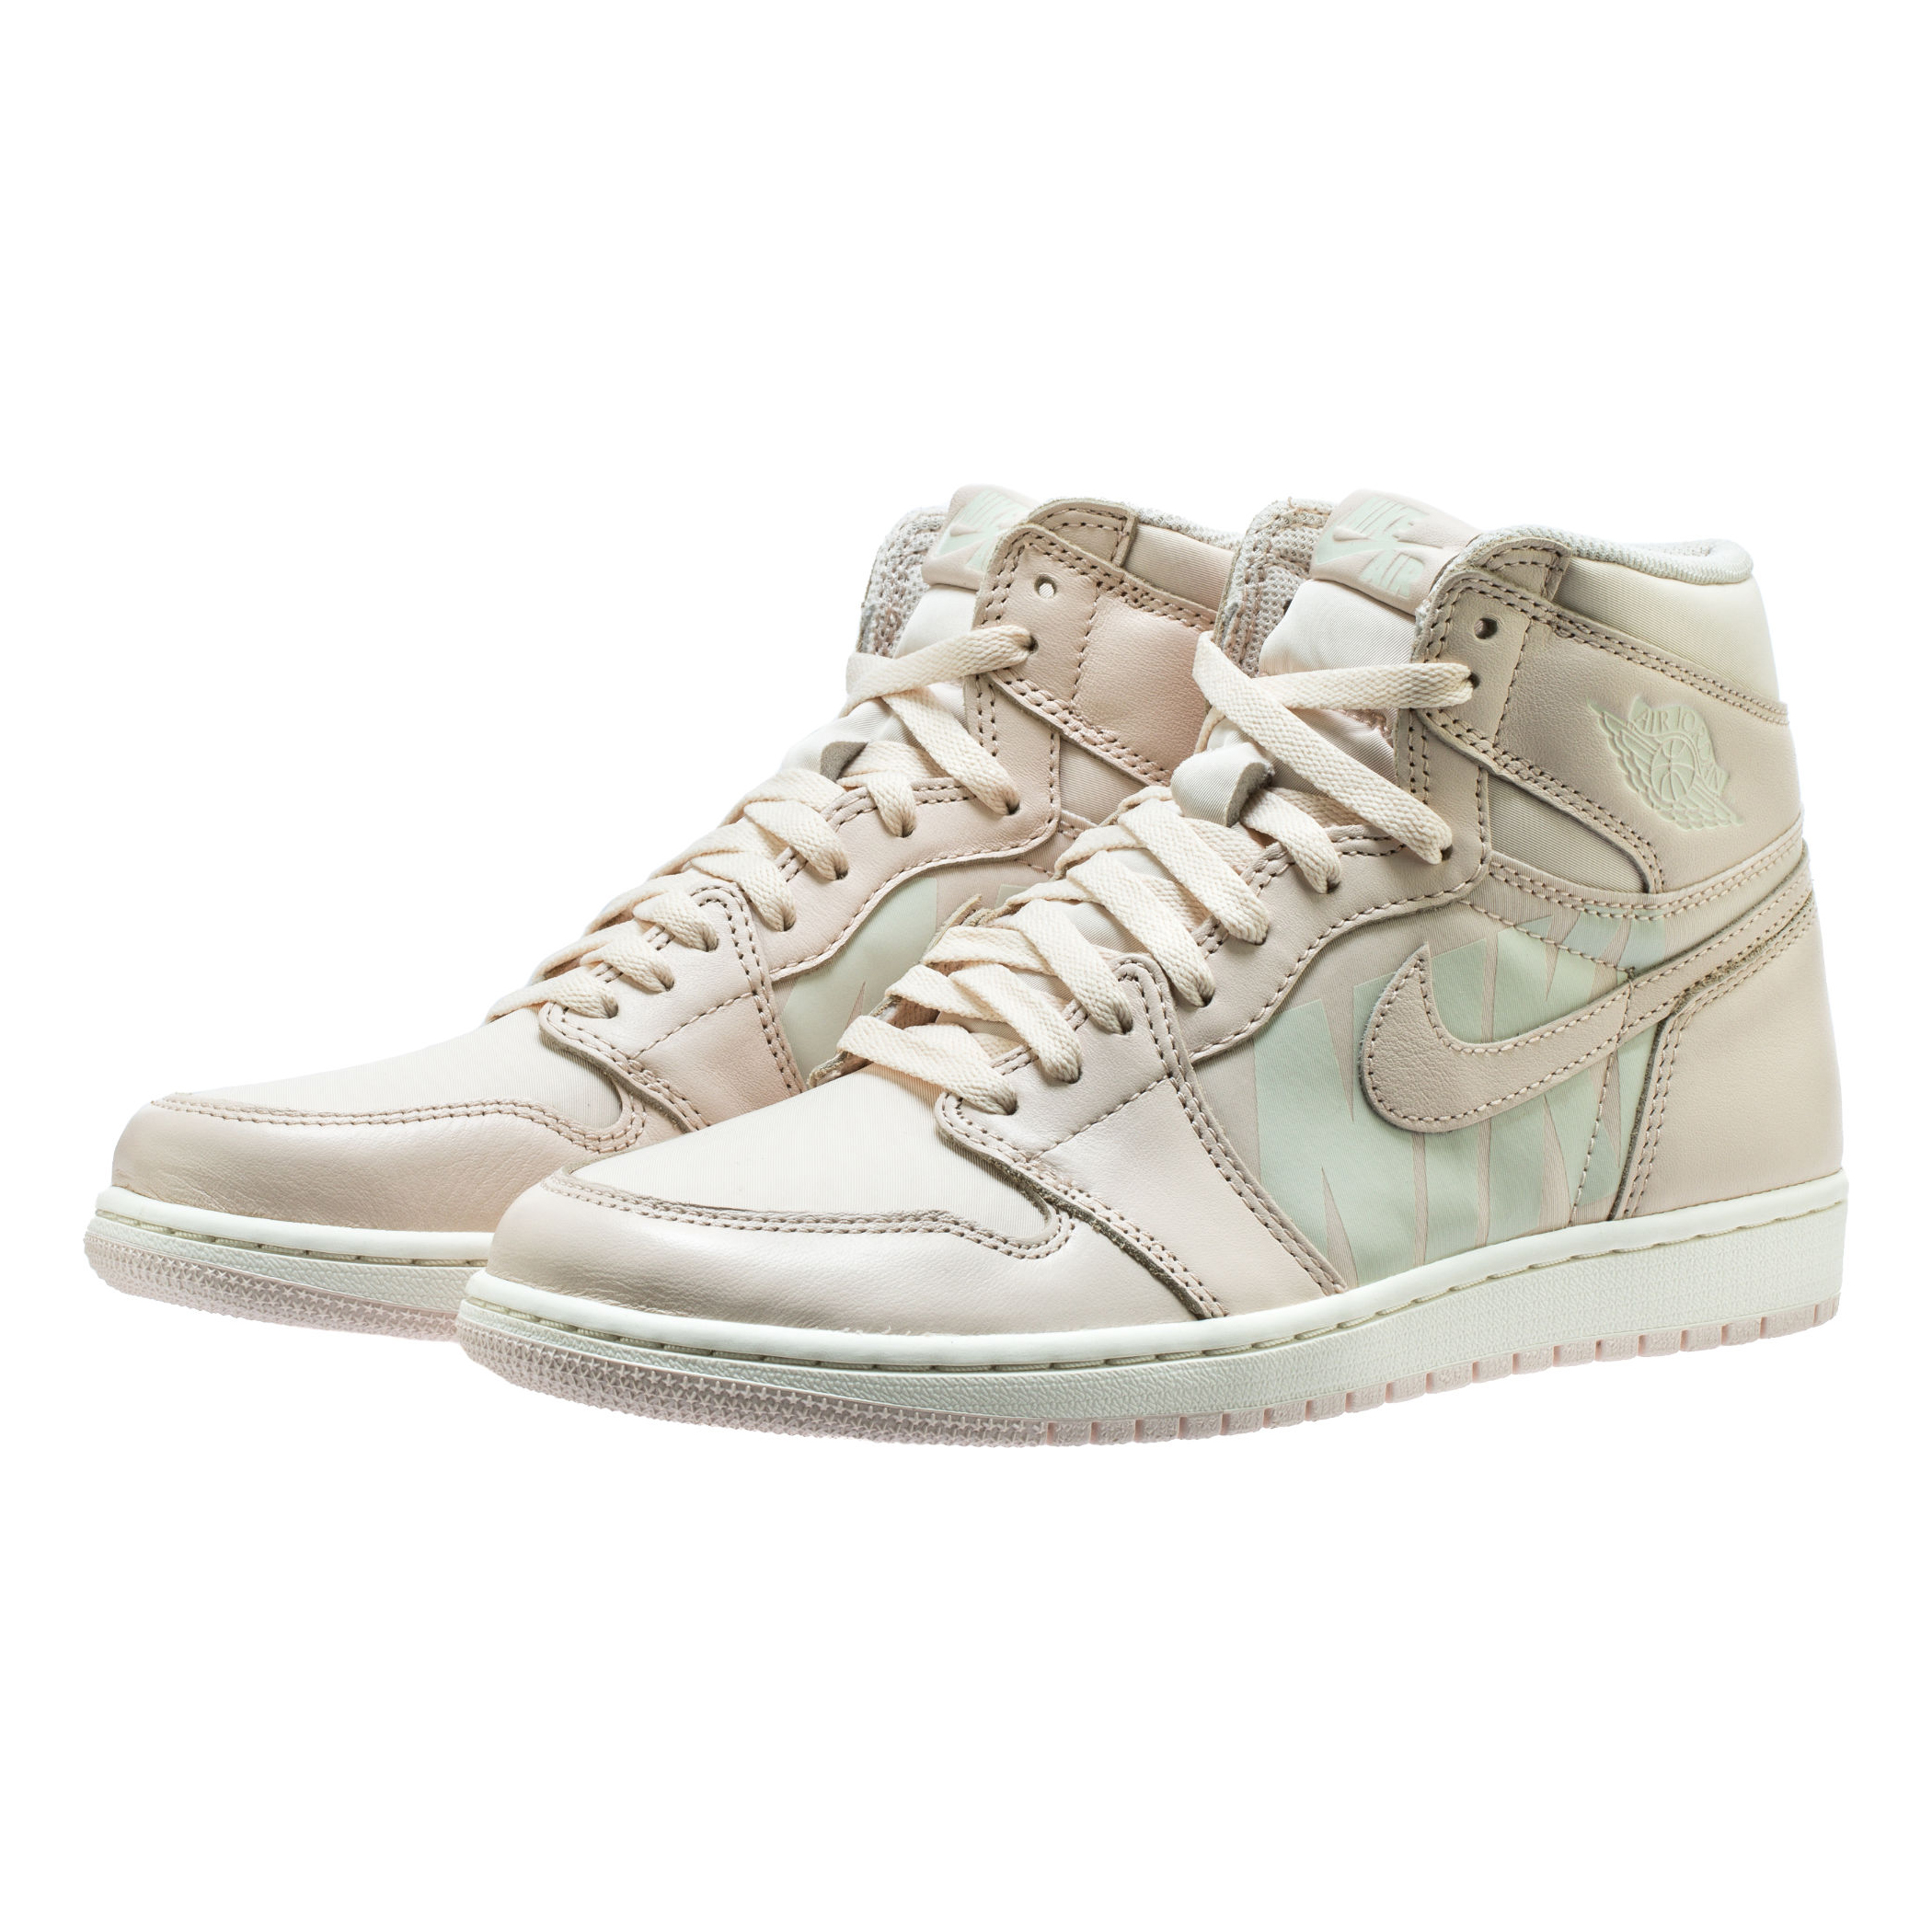 df6312eca27d AIR JORDAN 1 RETRO HIGH OG GUAVA ICE SAIL 1 - WearTesters